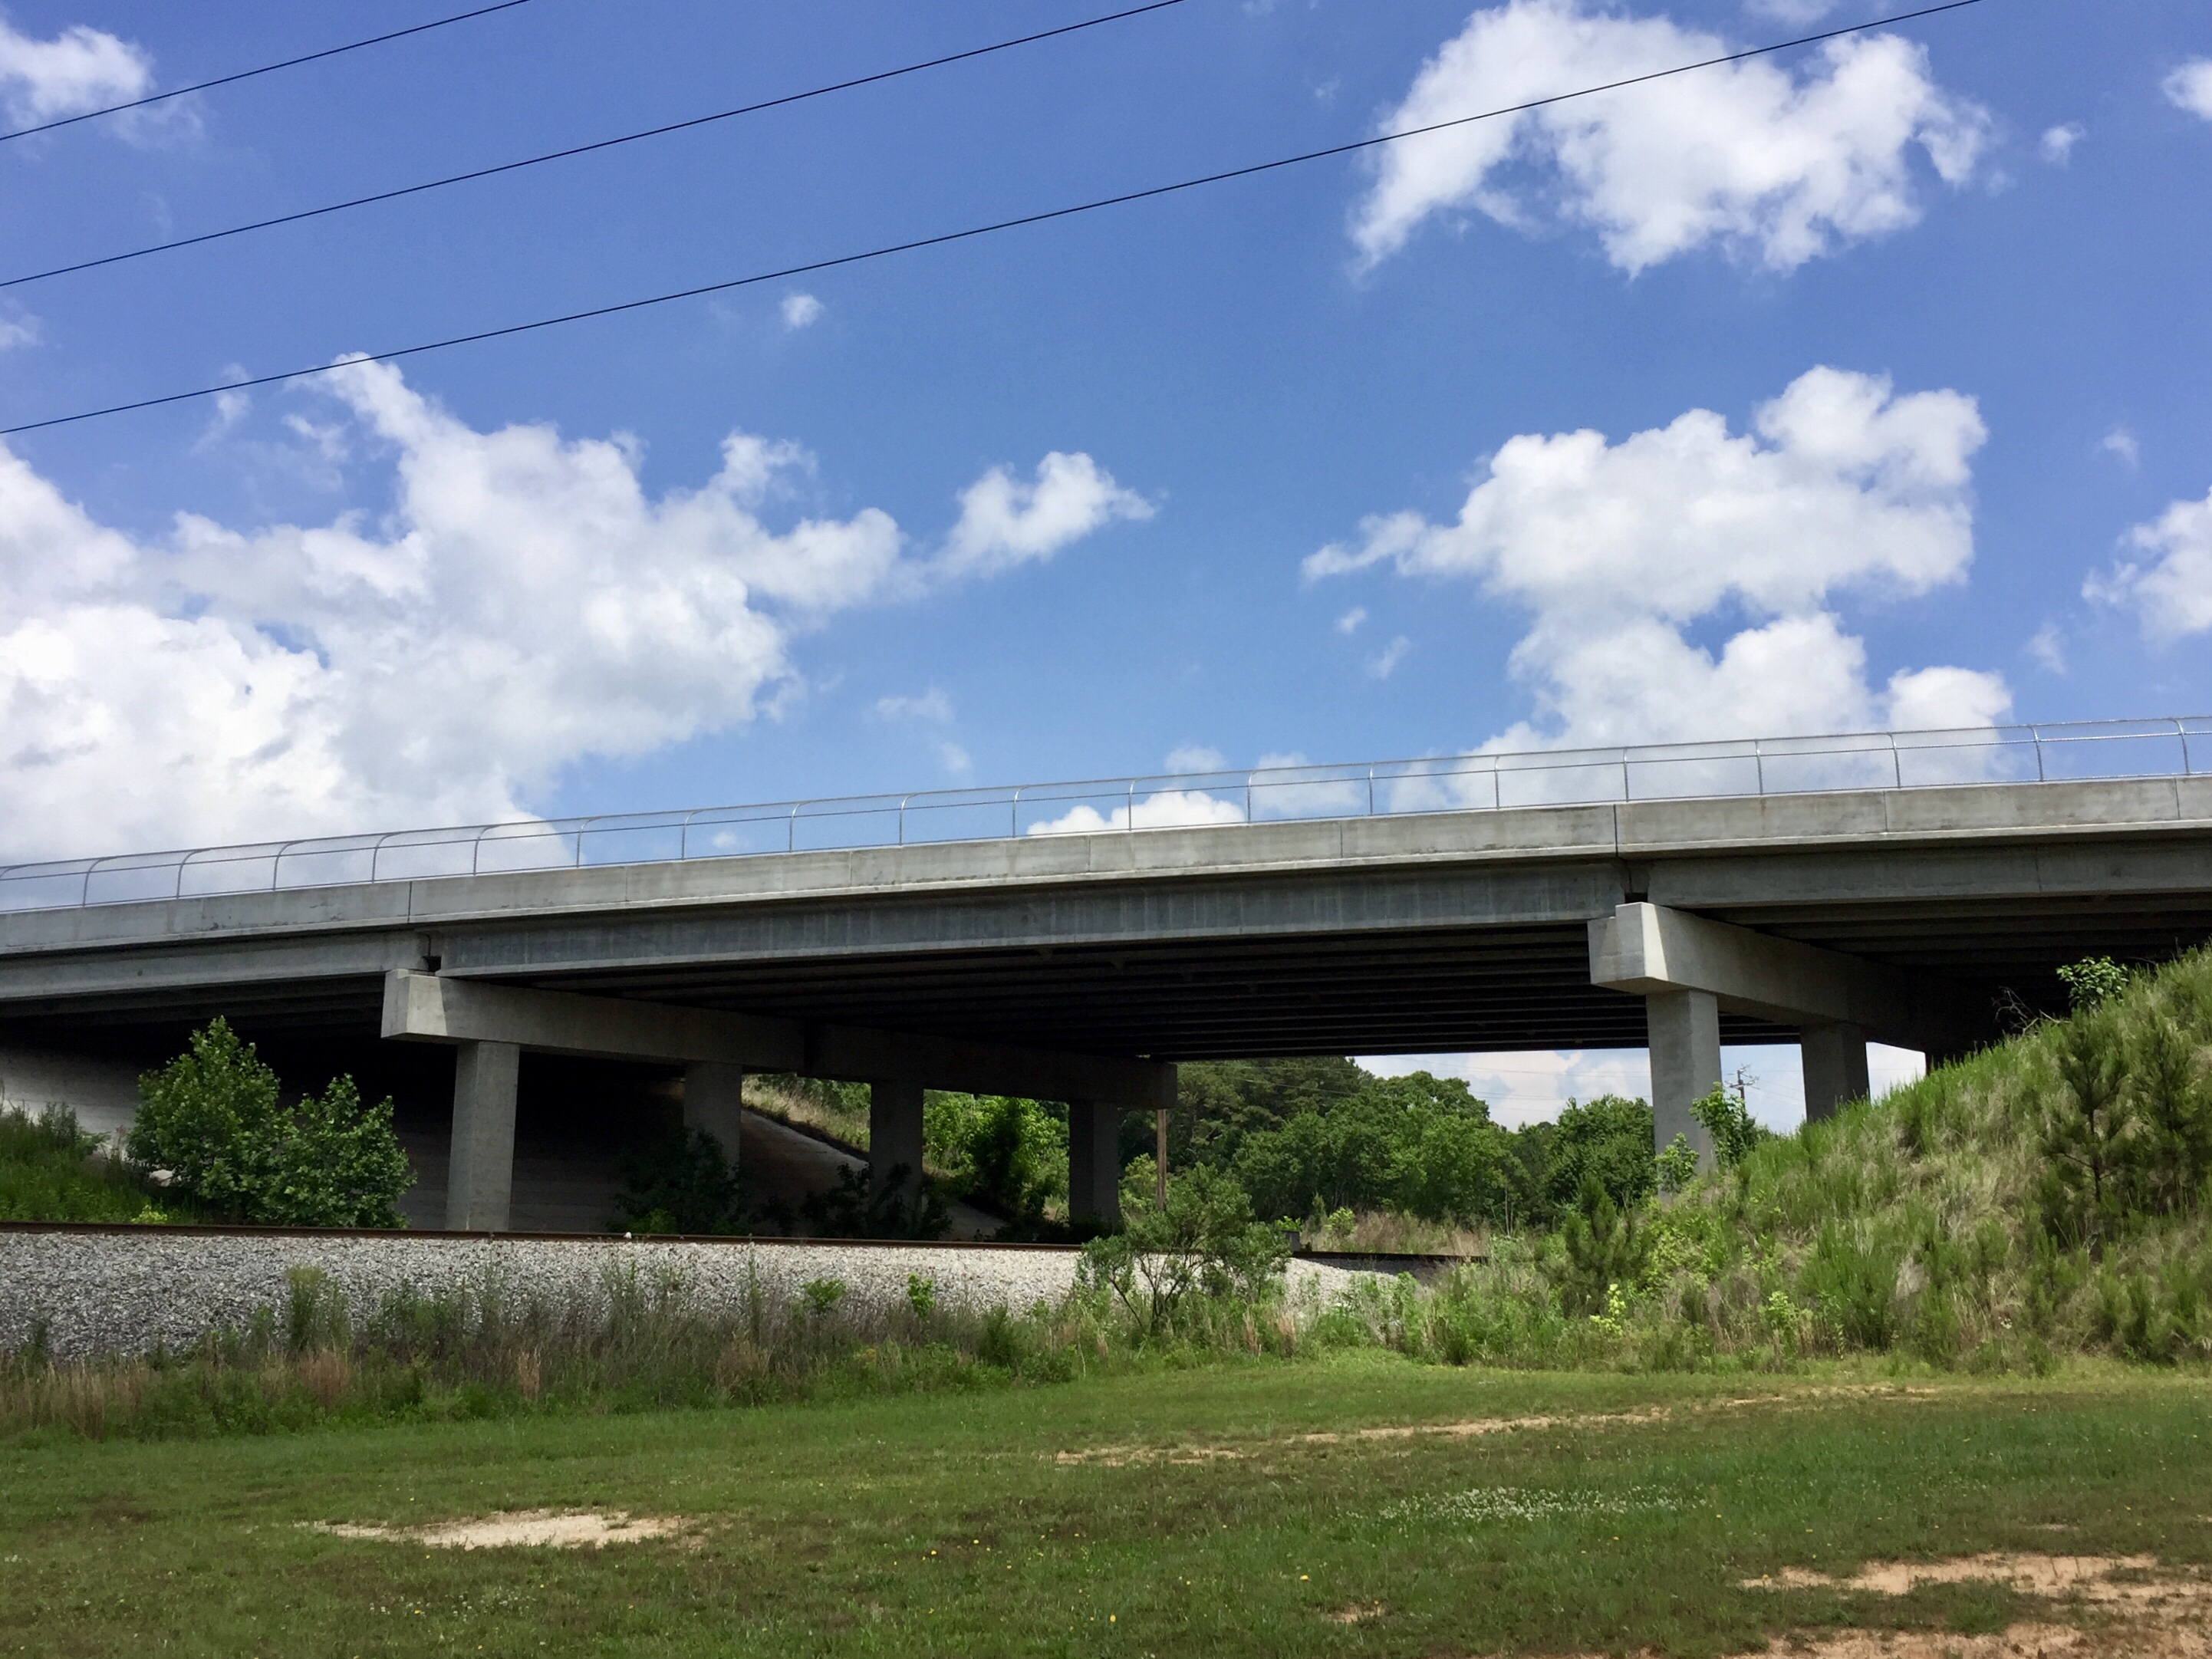 Rock Quarry Road bridge over Norfolk Southern railroad